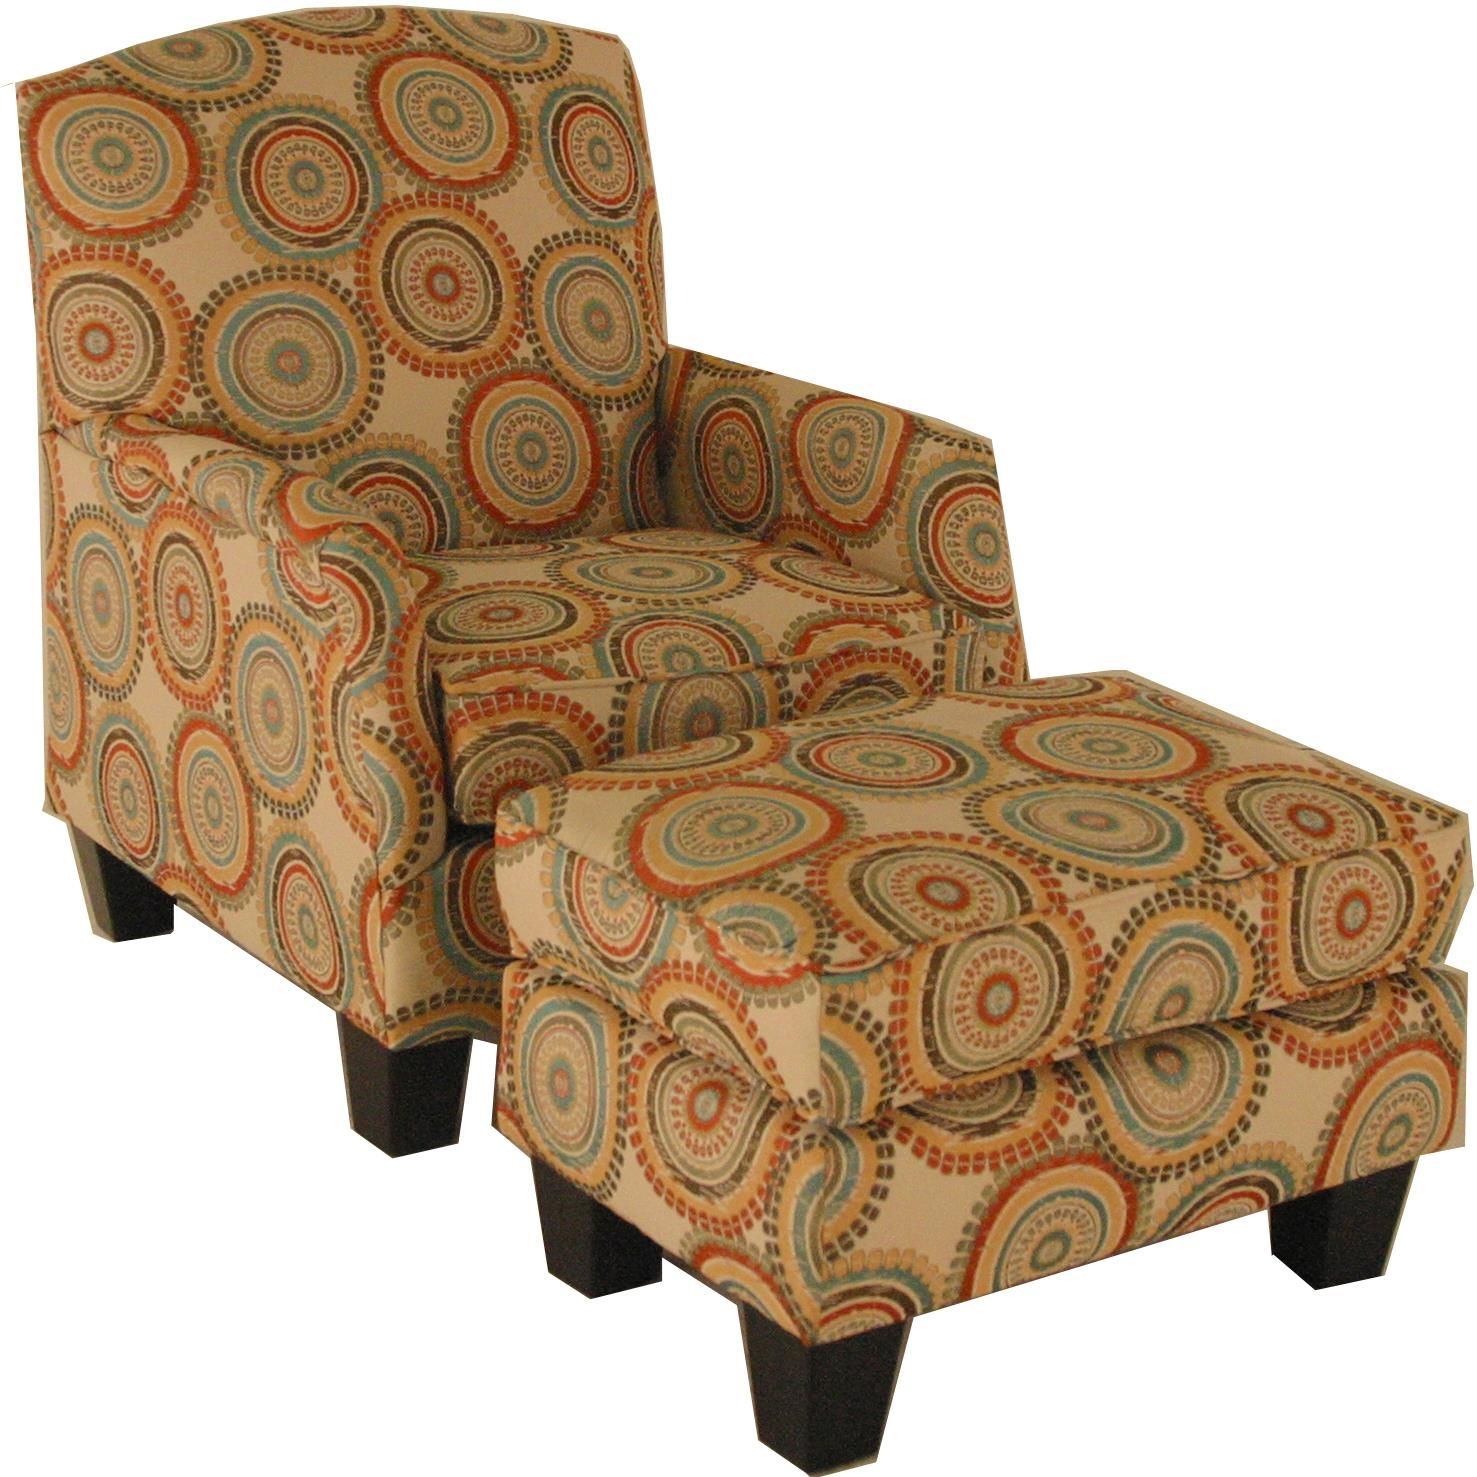 Accent chairs and ottomans transitional chair and ottoman